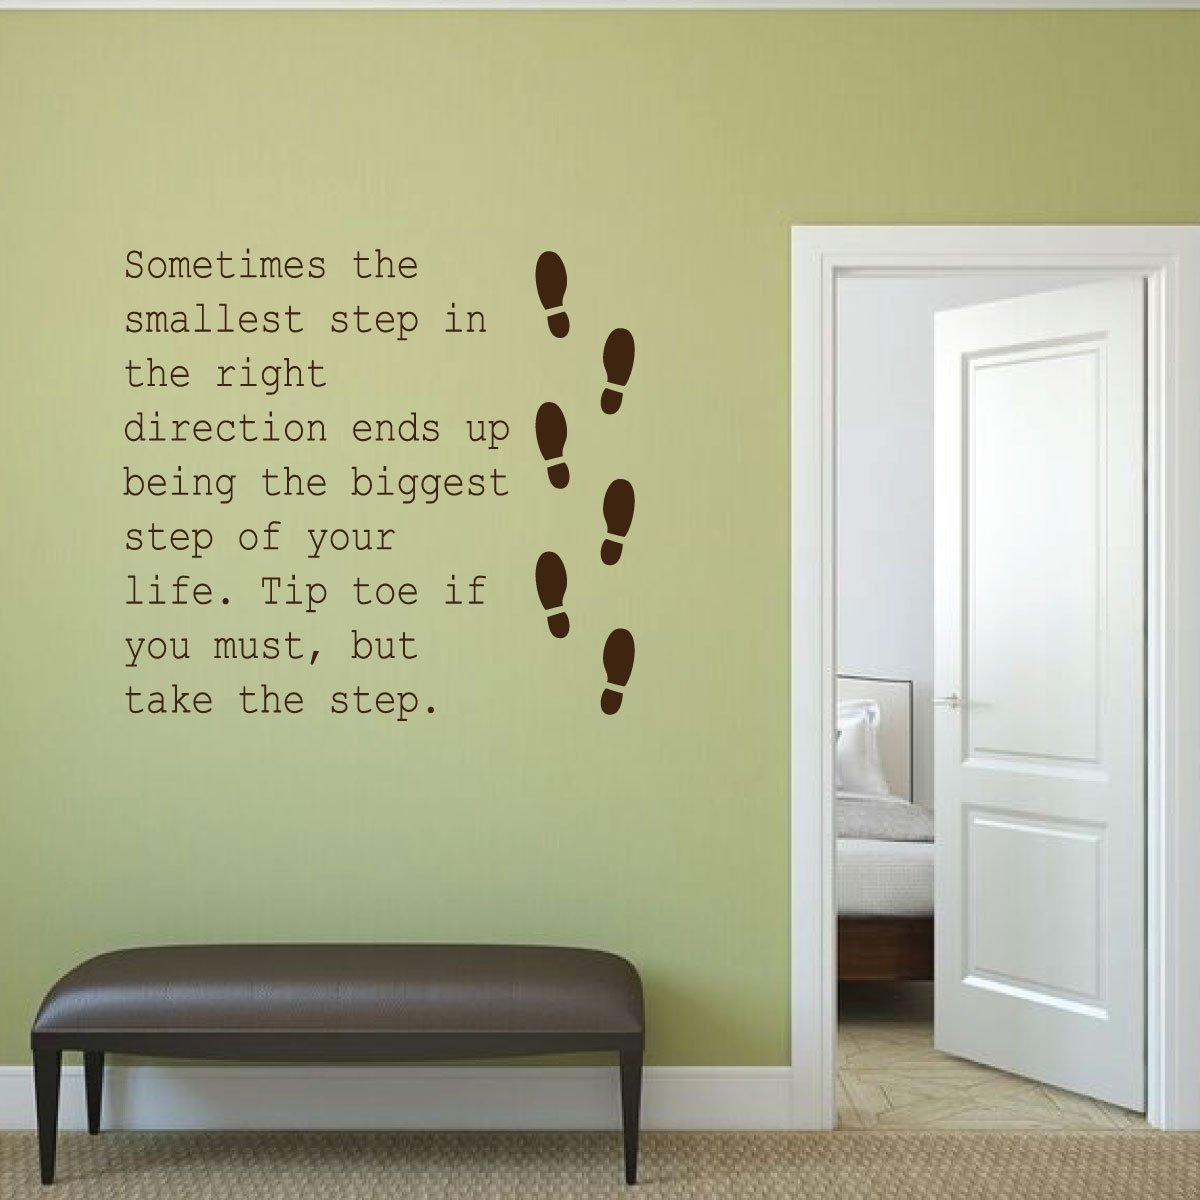 Wall Decals Single Step With Footstep Images For Home And School Decor